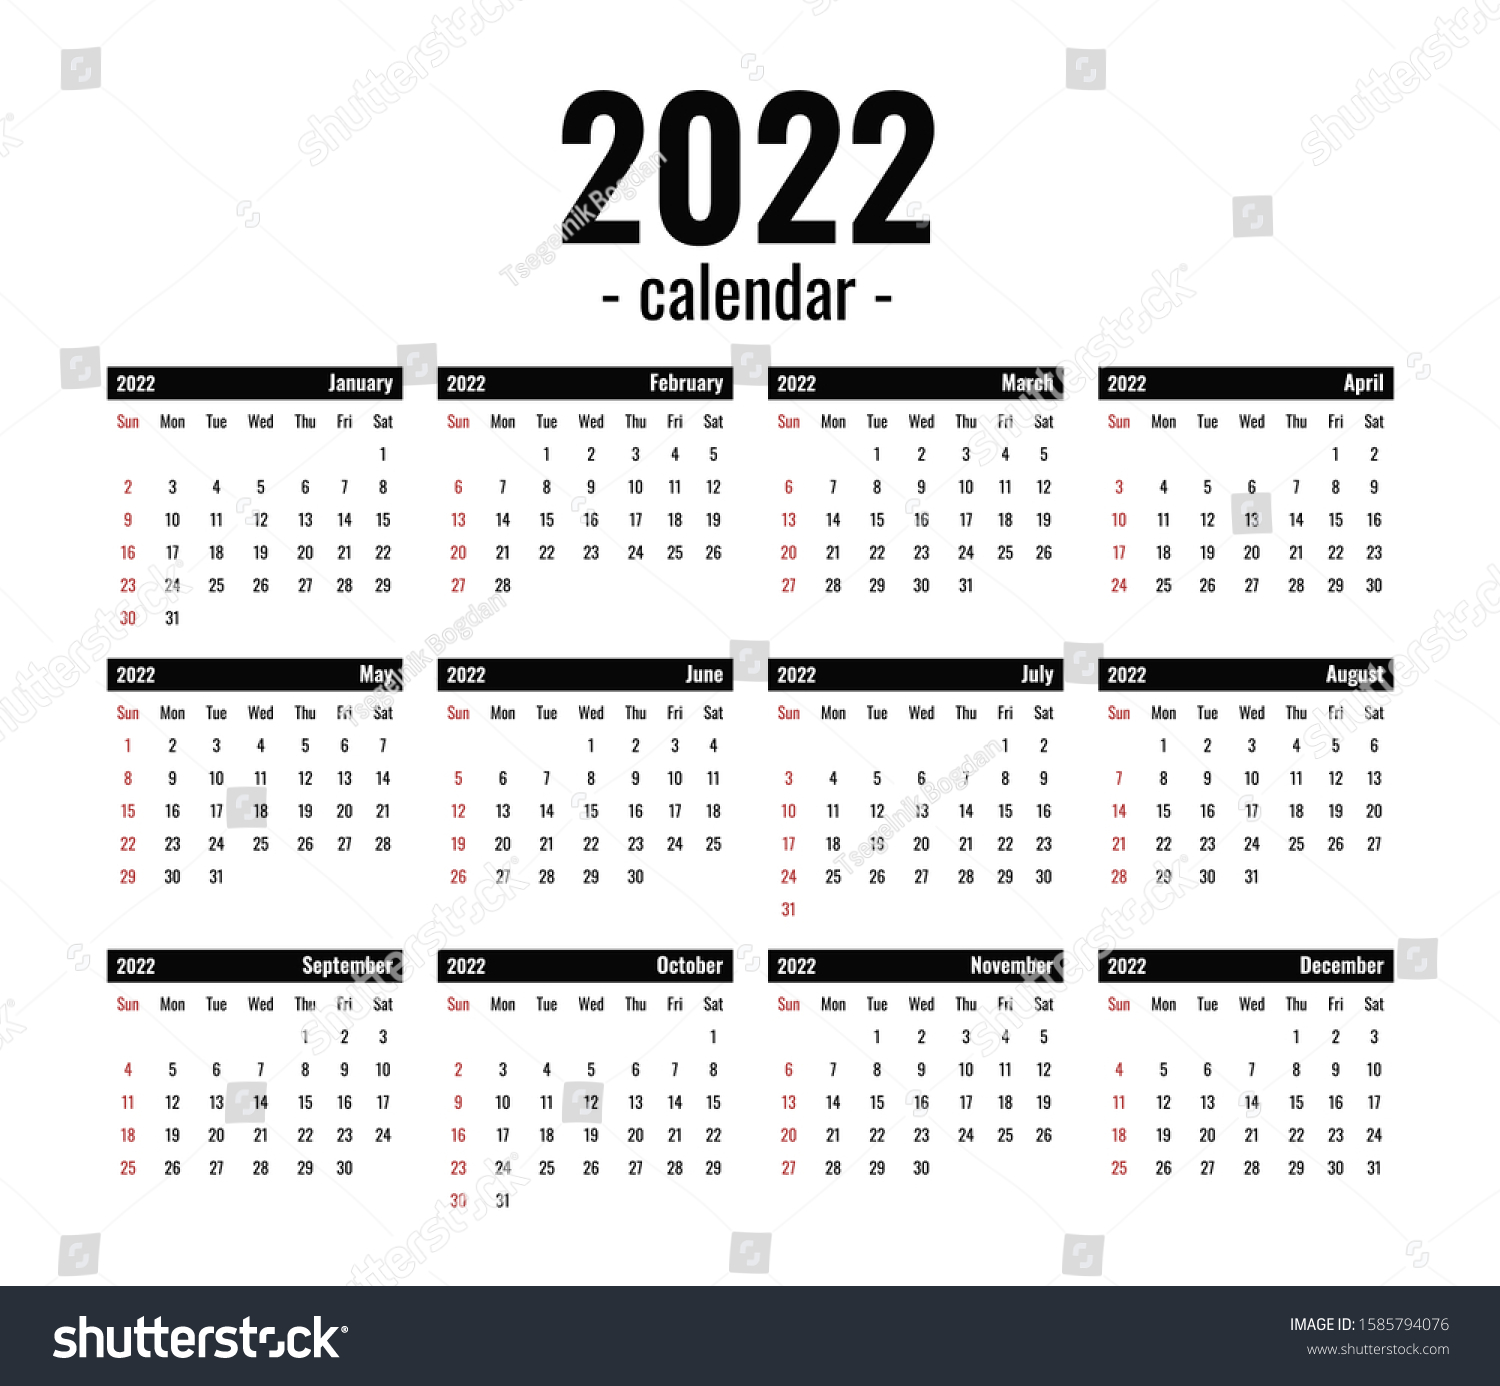 2022 Calendar With All Holidays.2022 Calendar Template Computer Black White Stock Vector Royalty Free 1585794076